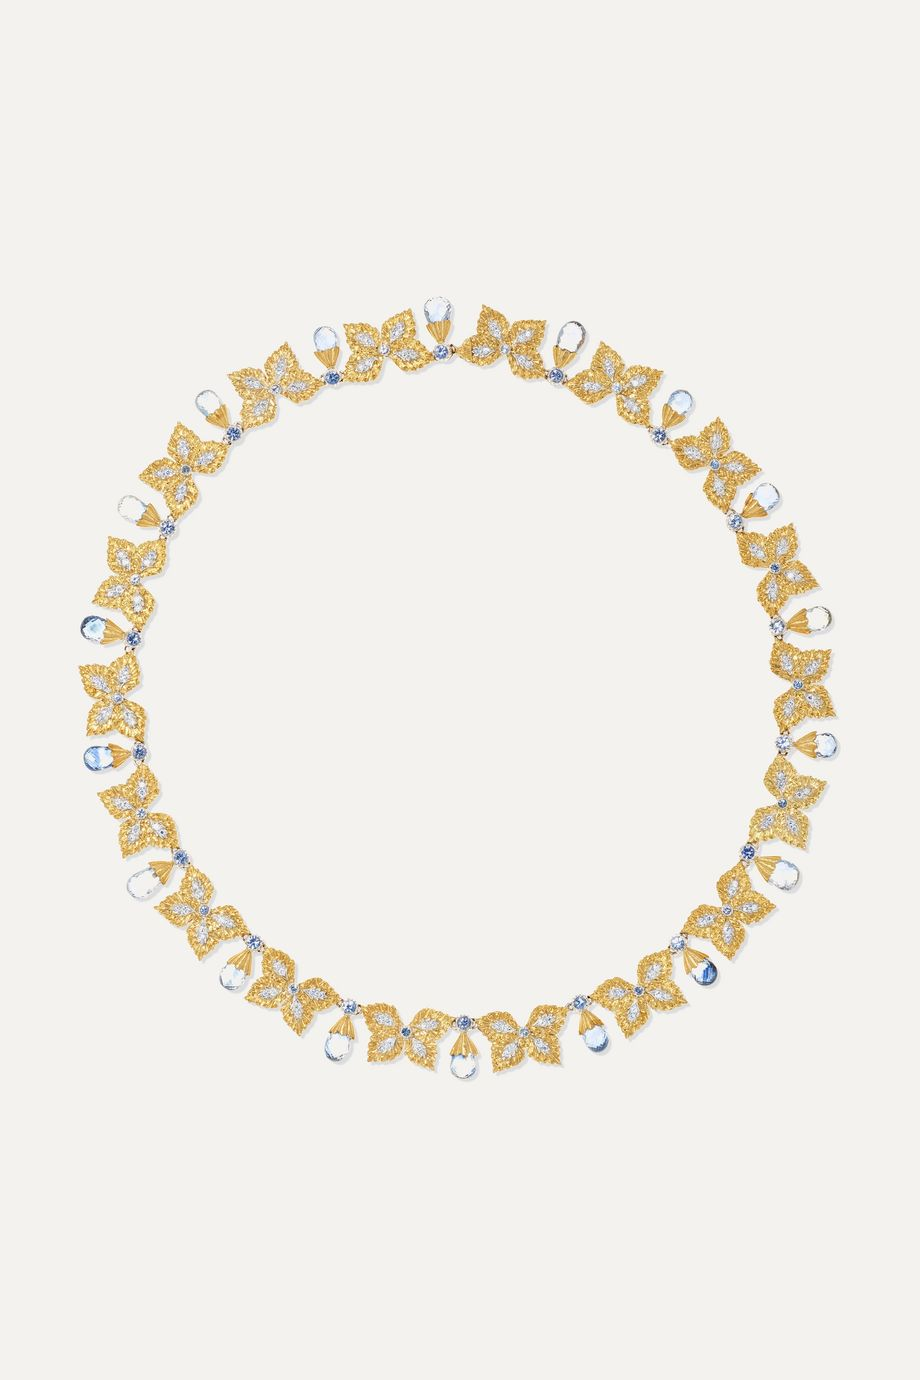 Buccellati 18-karat yellow and white gold, sapphire and diamond necklace